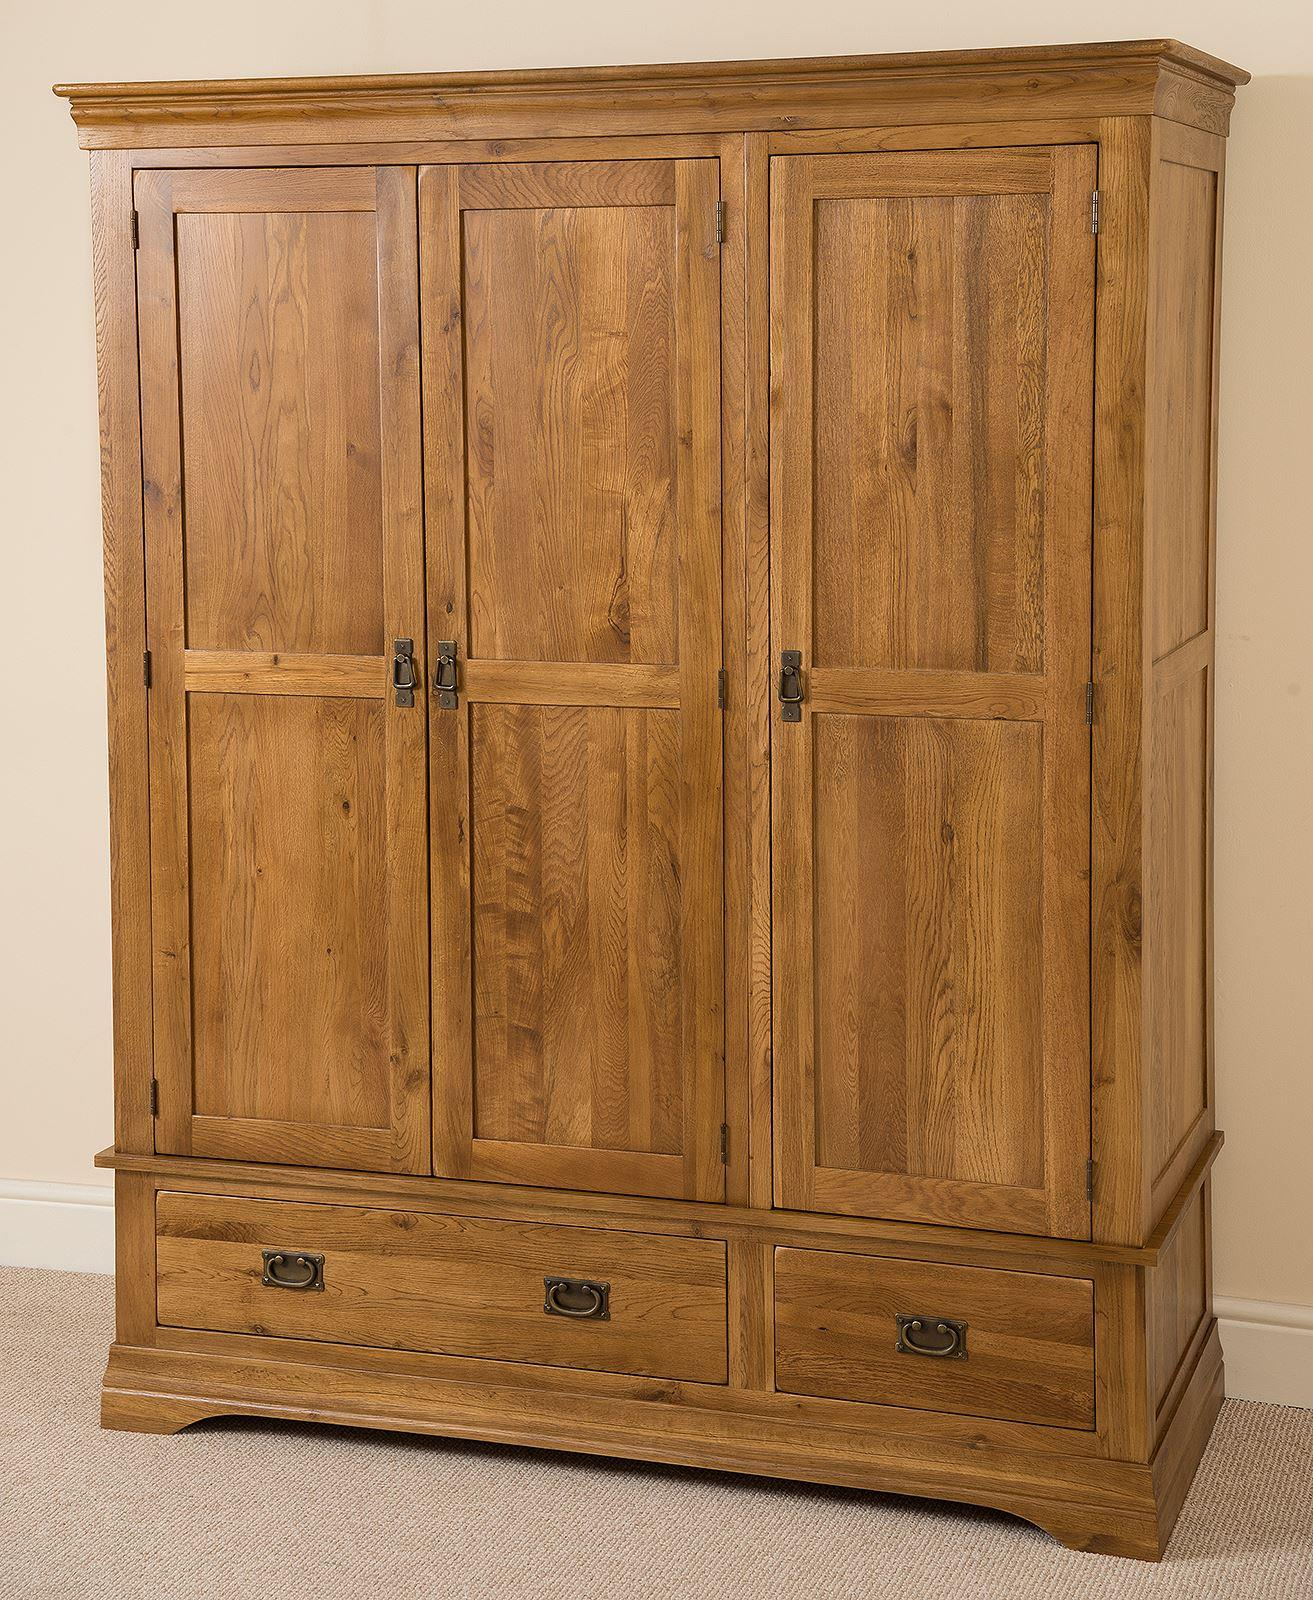 French Chateau Rustic Solid Oak Triple Wardrobe